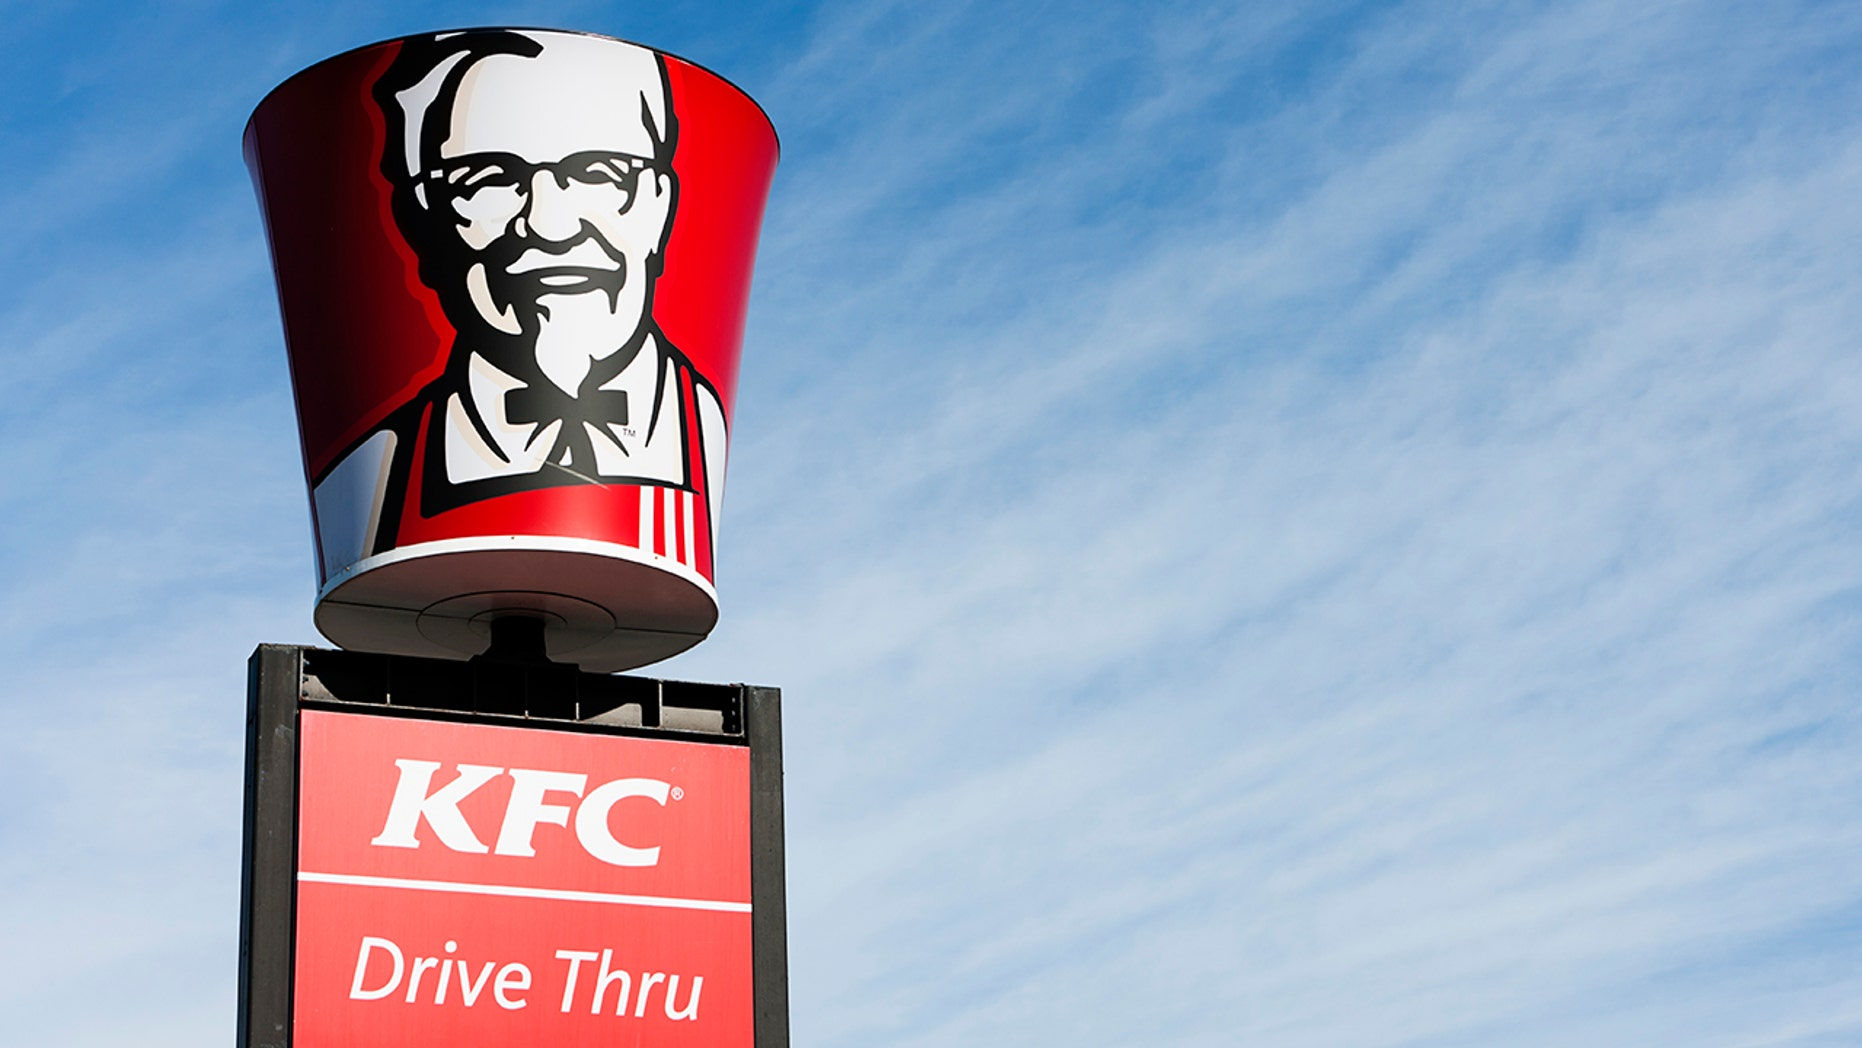 A jury has ruled that a Kentucky Fried Chicken franchisee must pay over $1.5 million to a former Delaware employee who said she was demoted because she wanted to pump her breast milk.